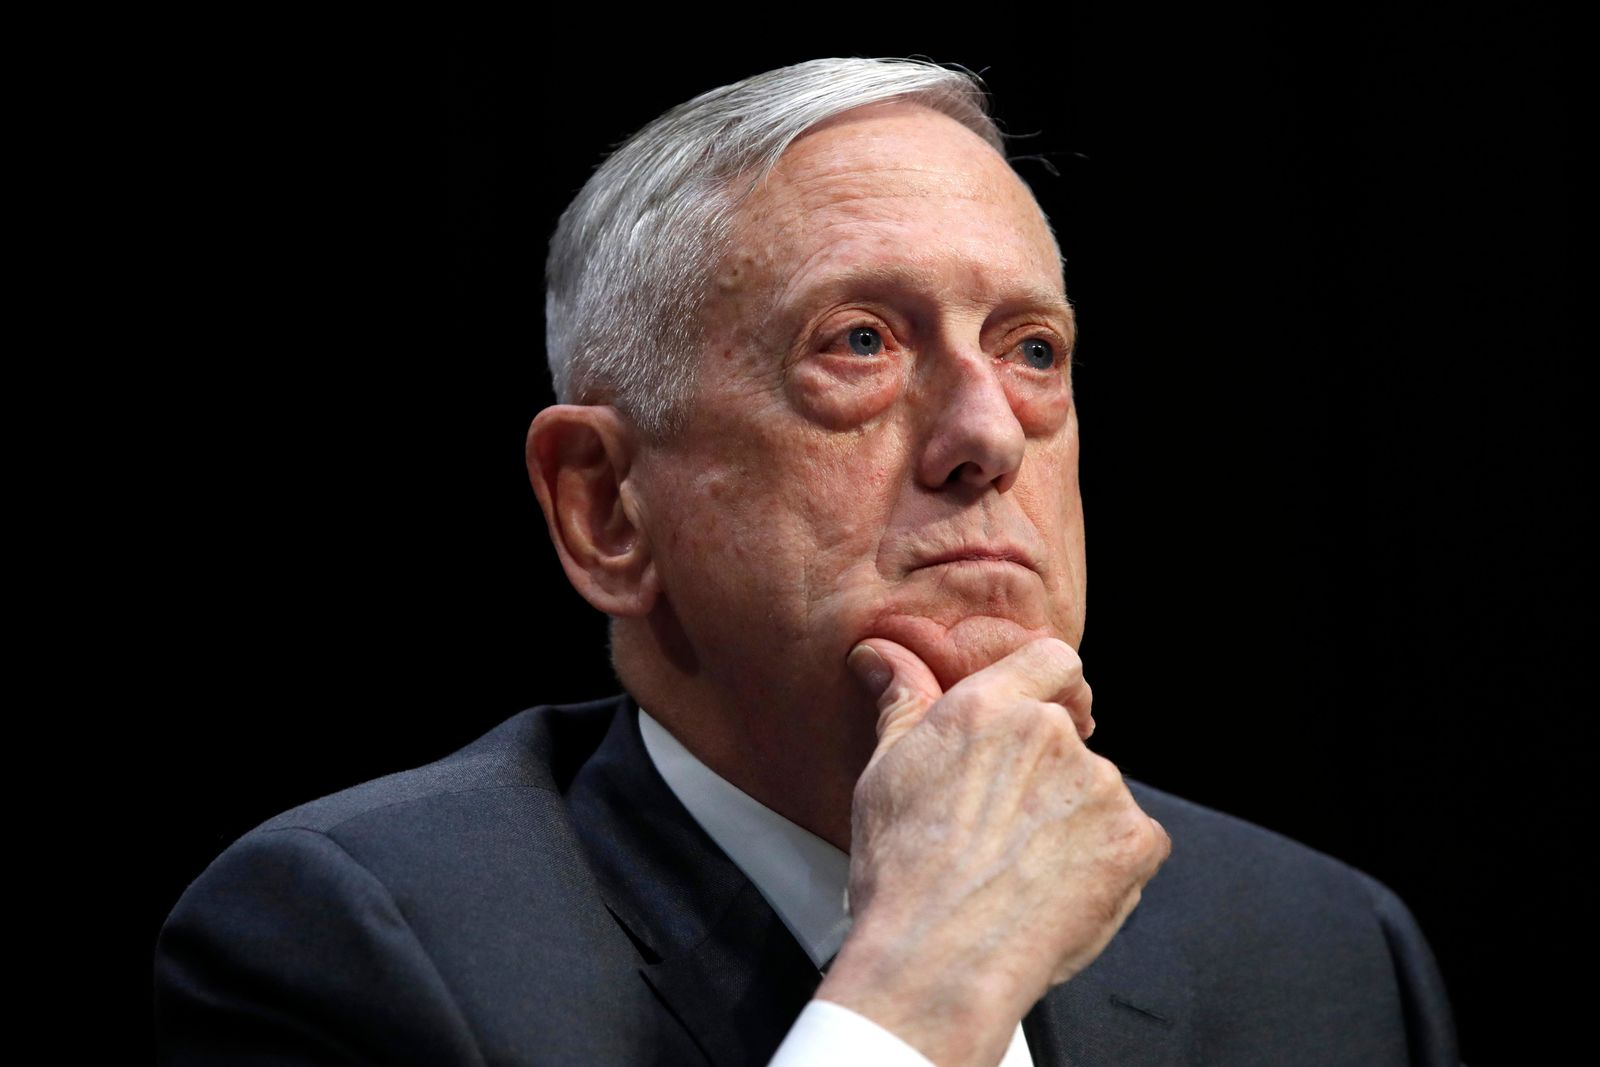 FILE - In this April 26, 2018, file photo, Defense Secretary Jim Mattis listens to a question during a hearing on Capitol Hill in Washington.{ } (AP Photo/Jacquelyn Martin, File)